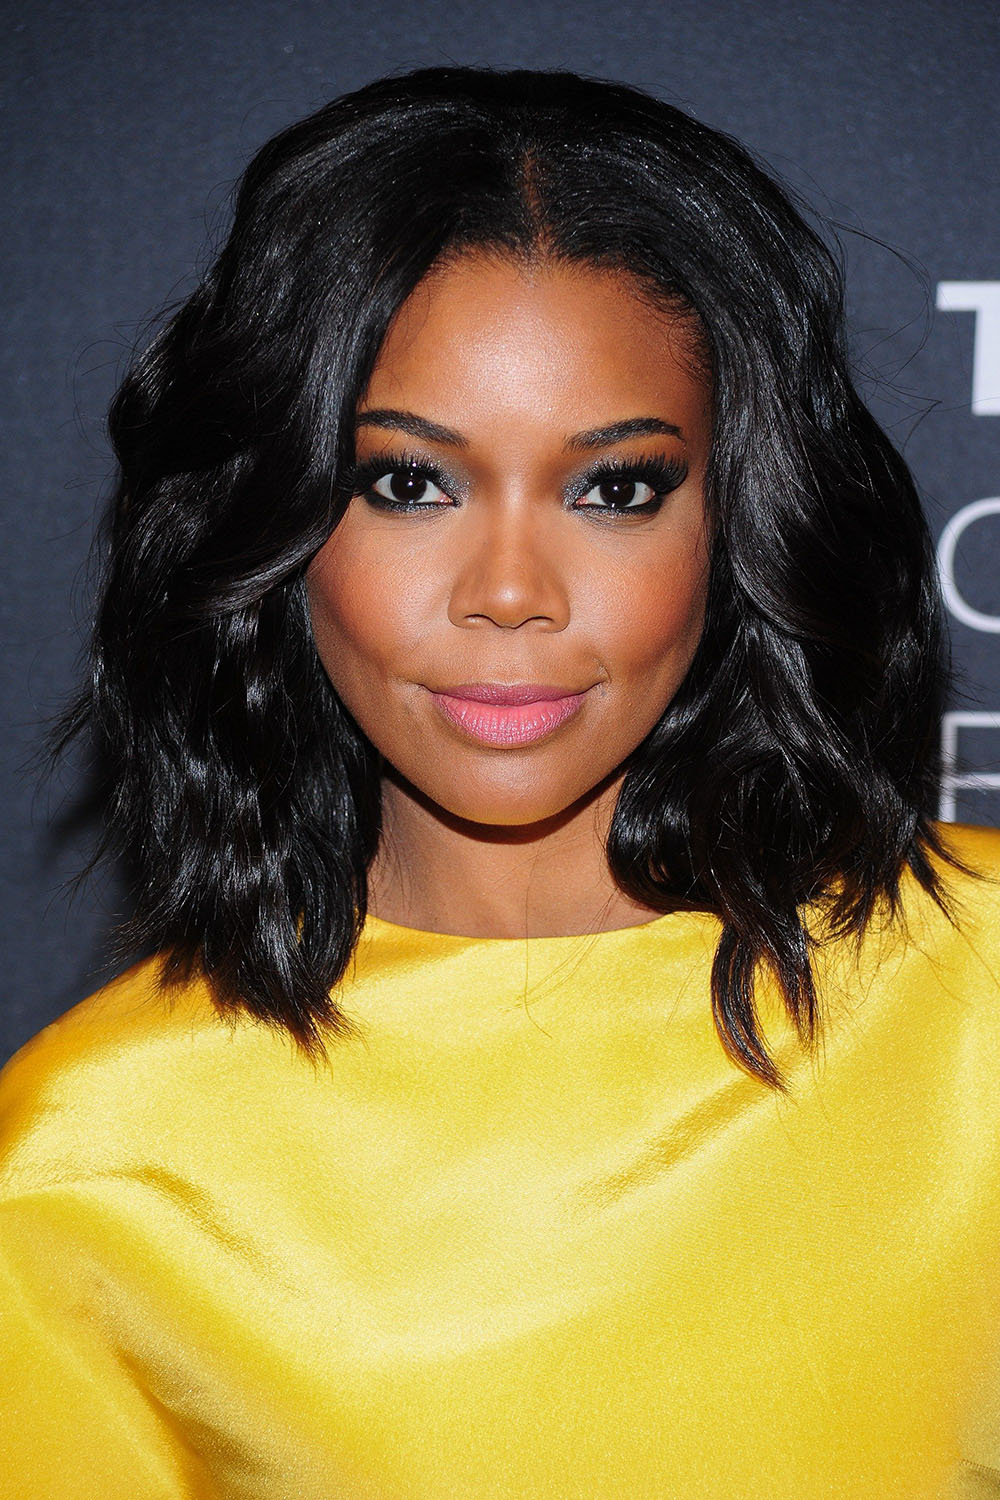 hairstyles for round faces: celebrity hairspiration | look